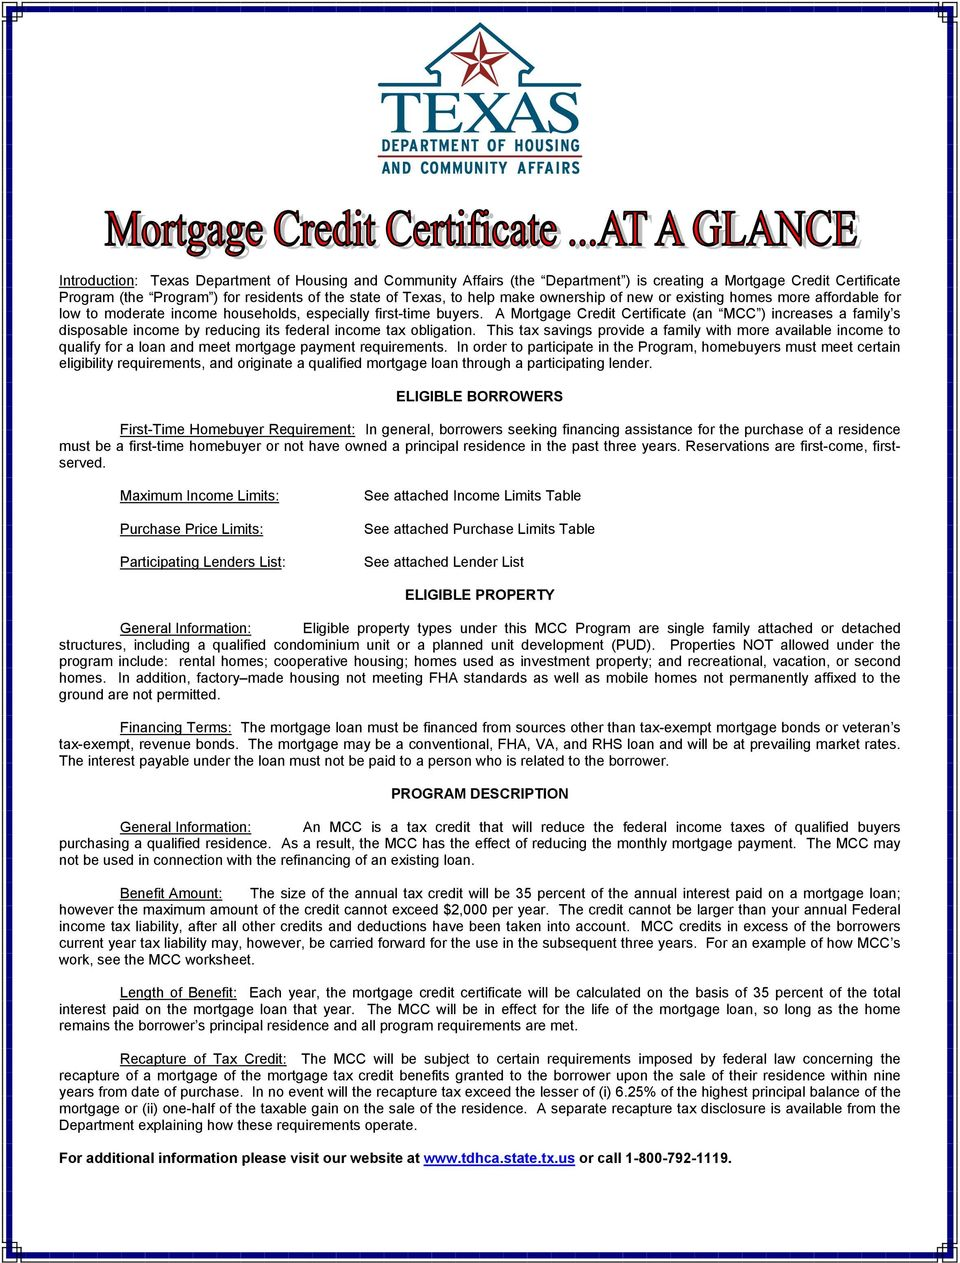 A Mortgage Credit Certificate (an MCC ) increases a family s disposable income by reducing its federal income tax obligation.